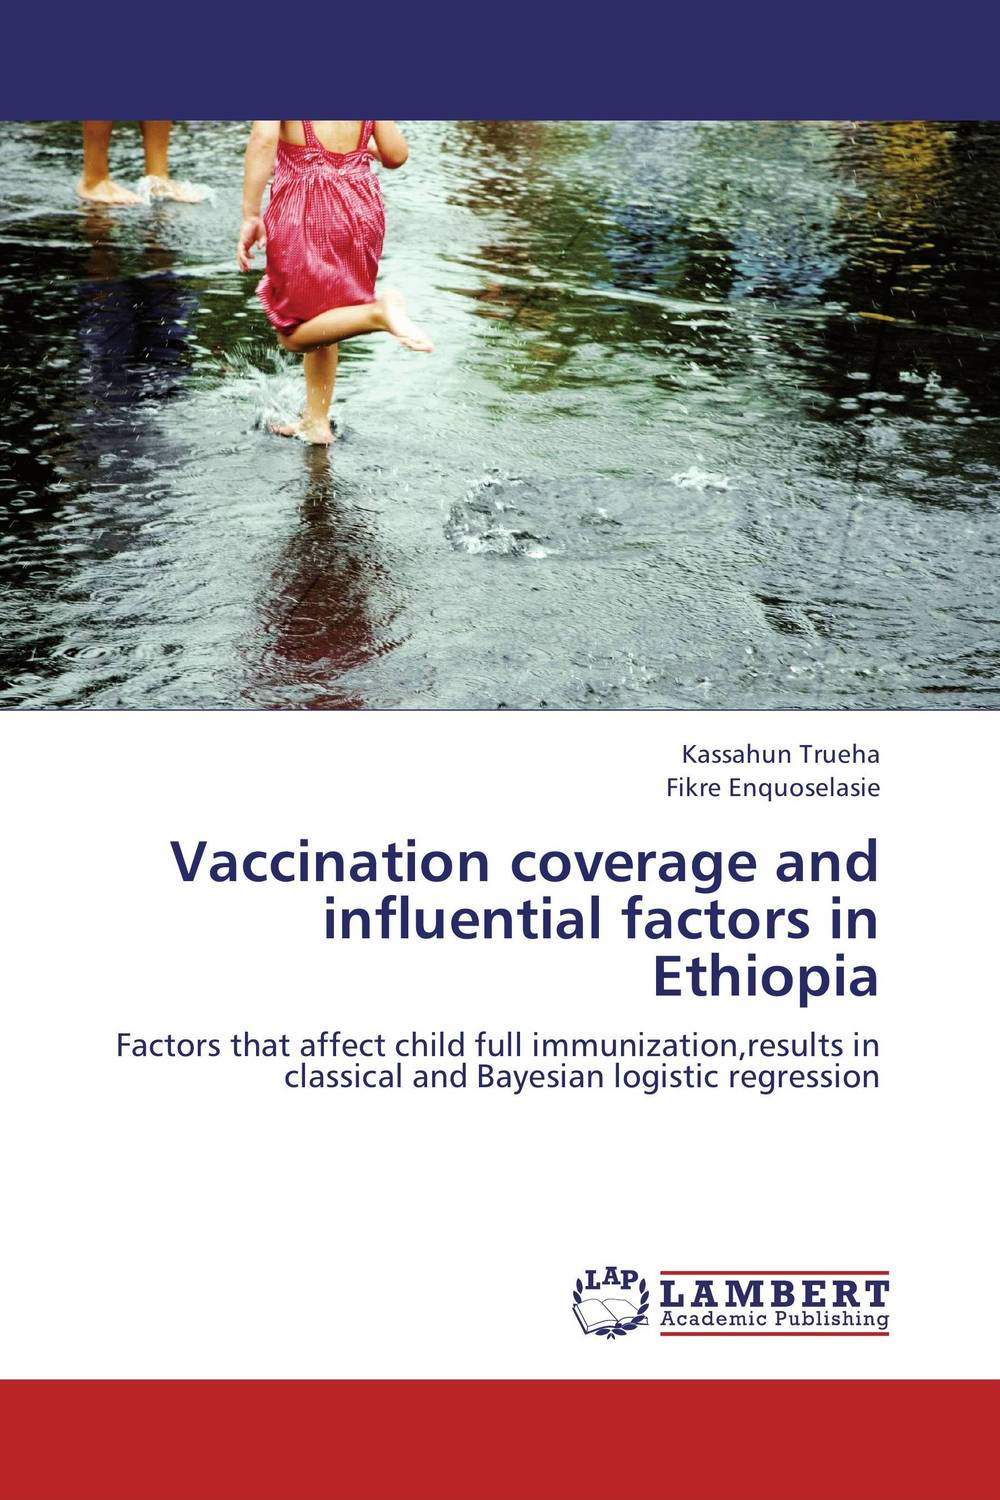 Фото Vaccination coverage and influential factors in Ethiopia cervical cancer in amhara region in ethiopia